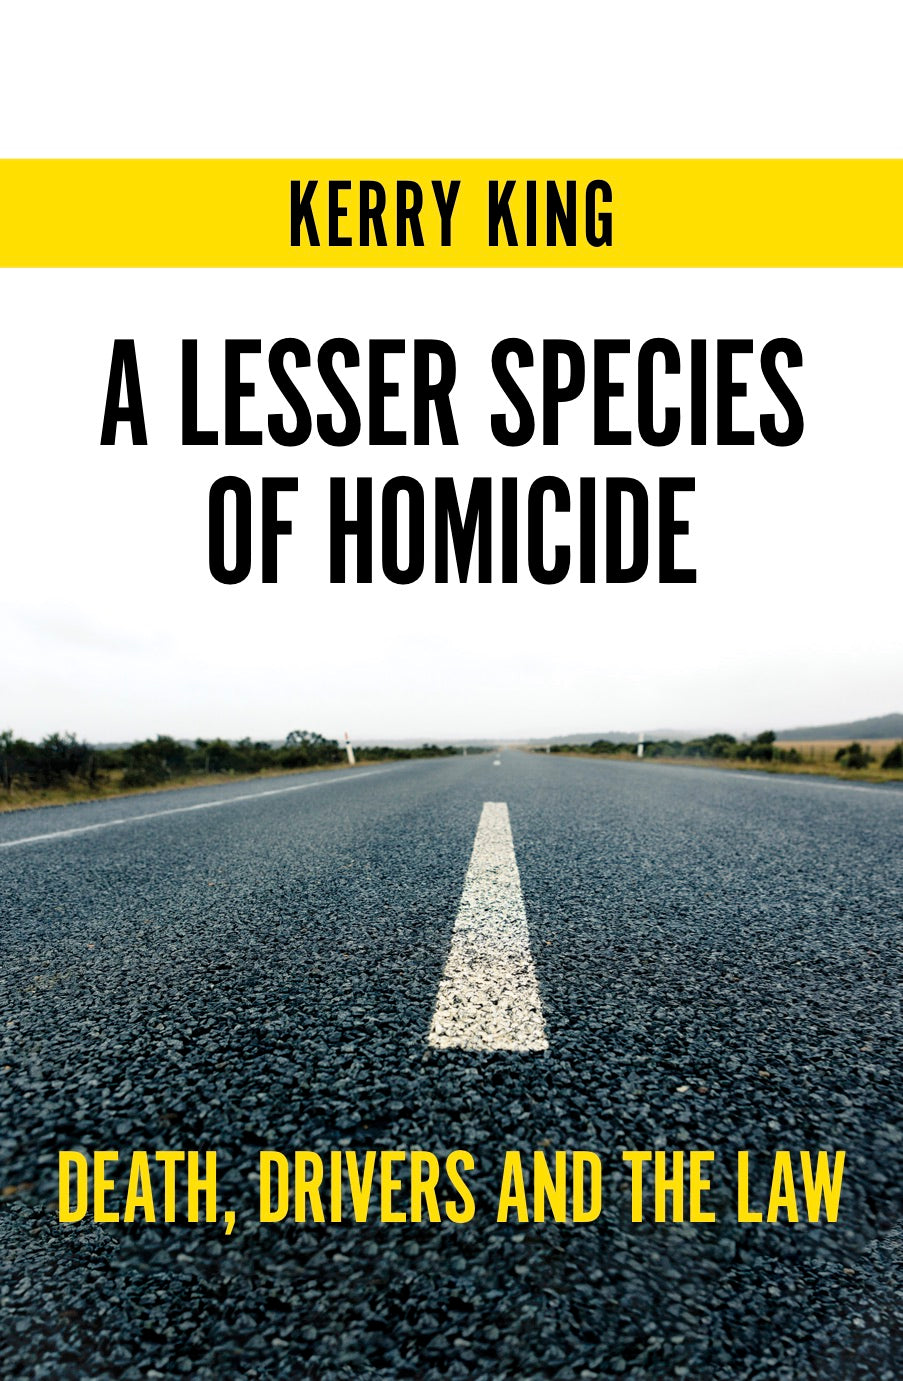 A Lesser Species of Homicide: Death, drivers and the law